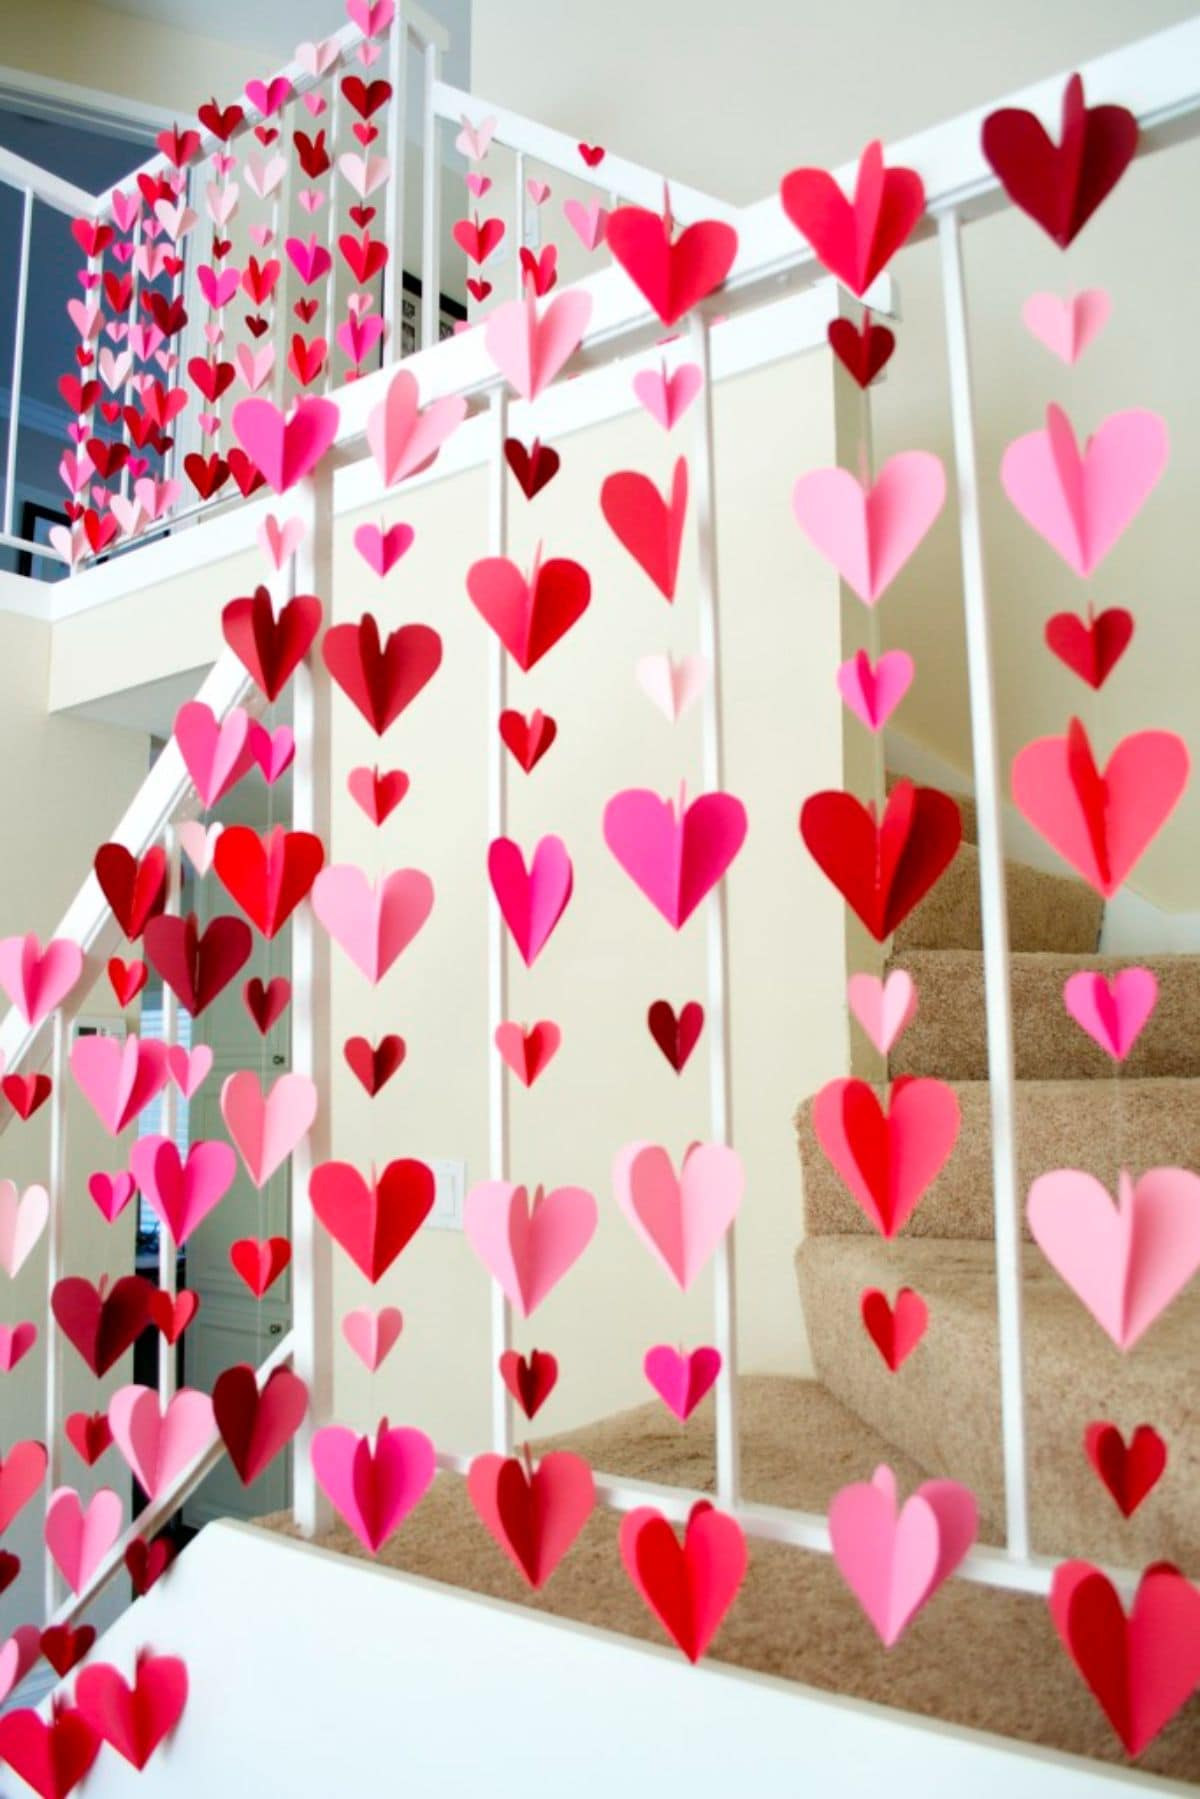 hanging from the top of a shelf are several strings with 3D paper hearts strung vertically from them